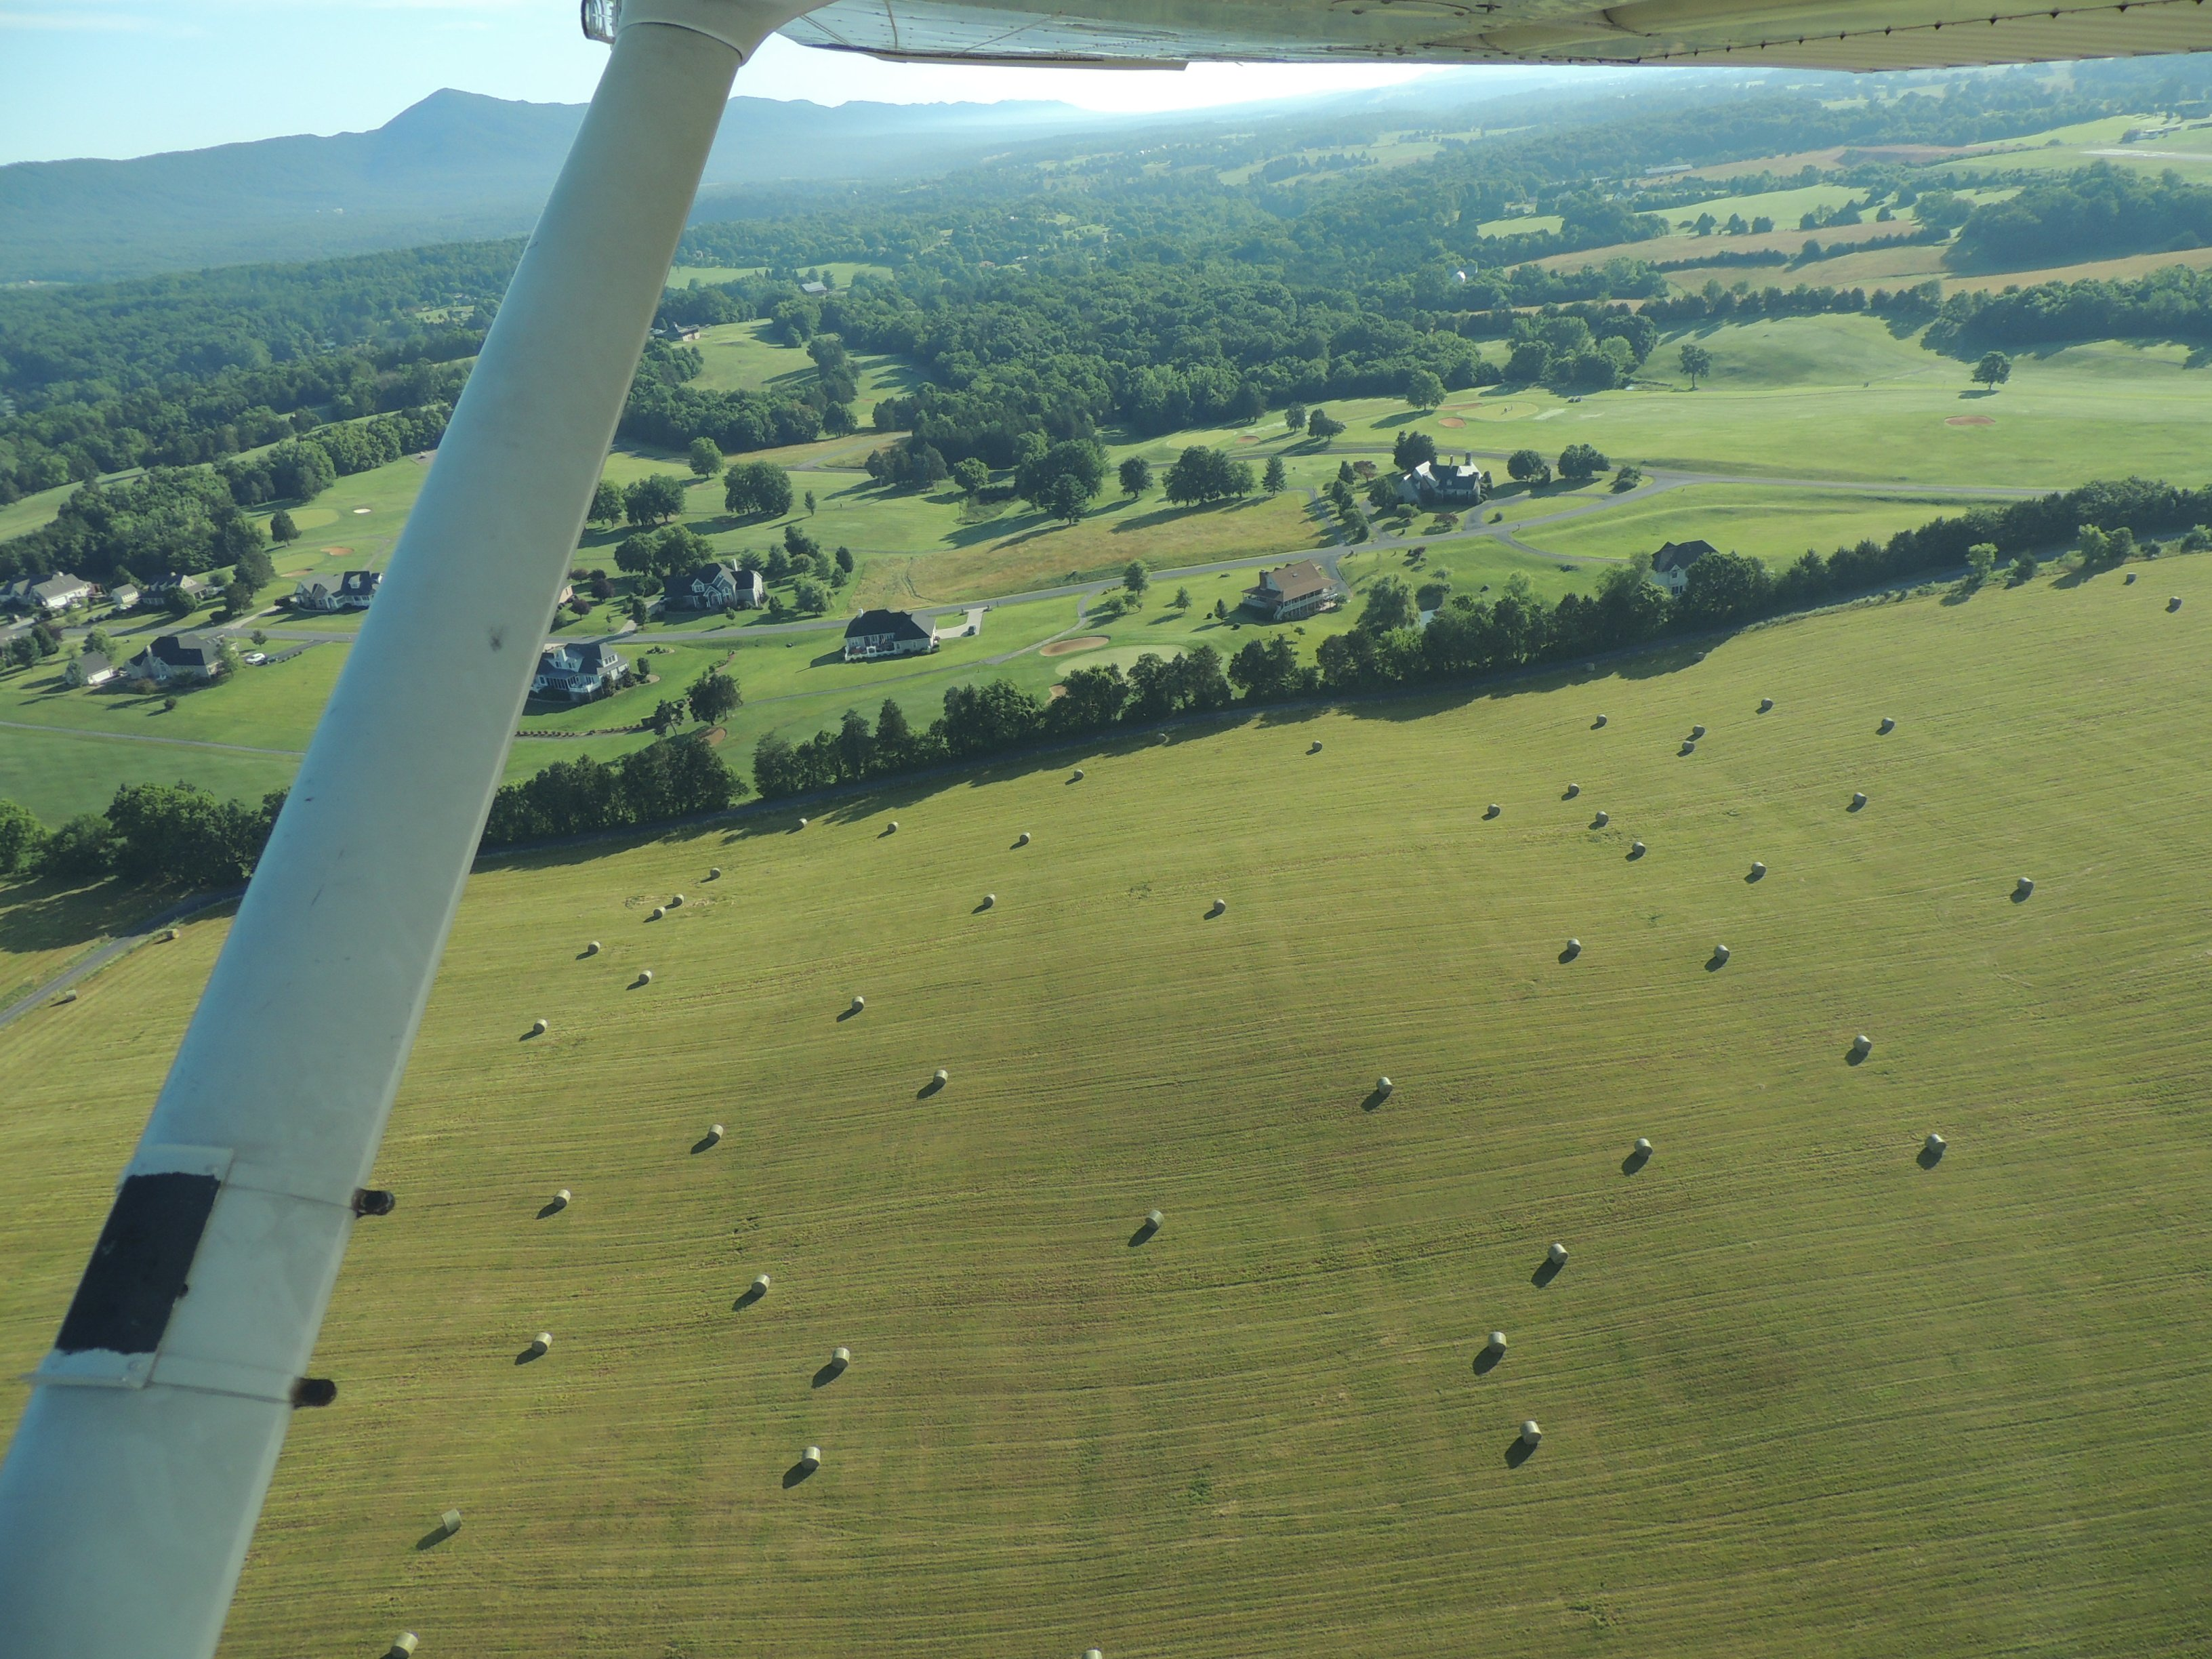 Sunday morning departure from home base Luray